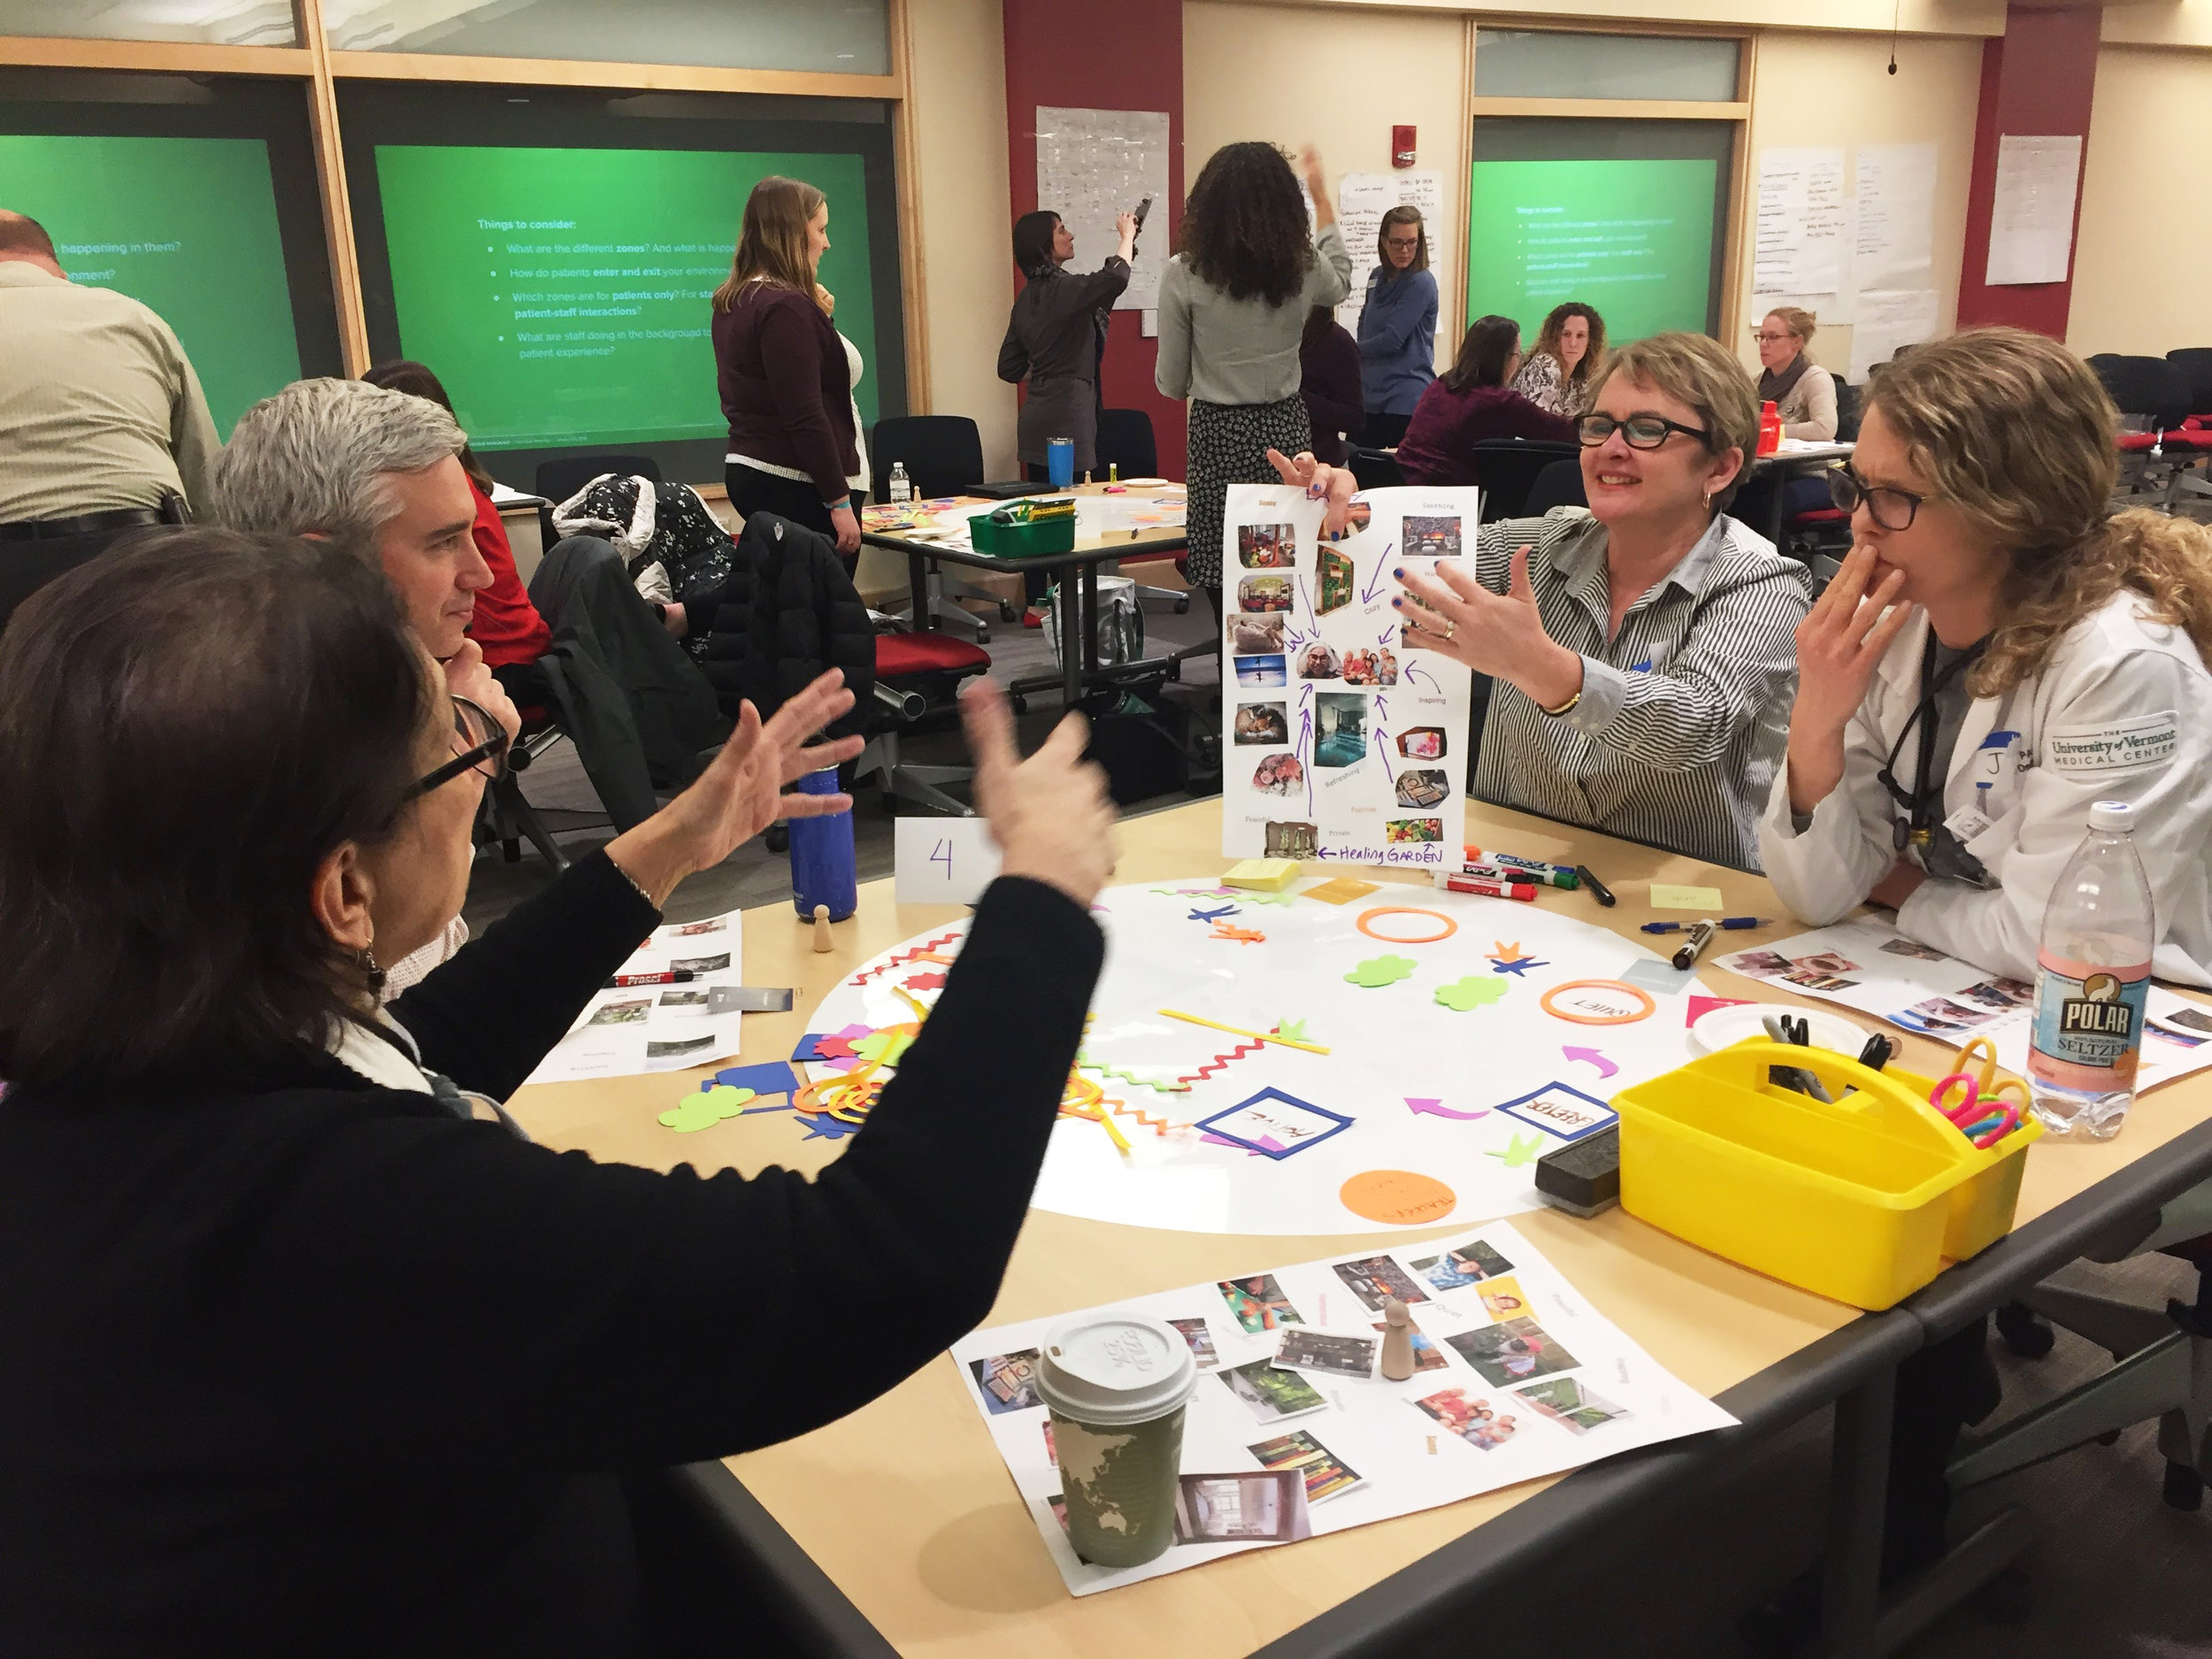 Patients and staff participated in co-creative workshops to help envision the ideal clinic environment and experience.